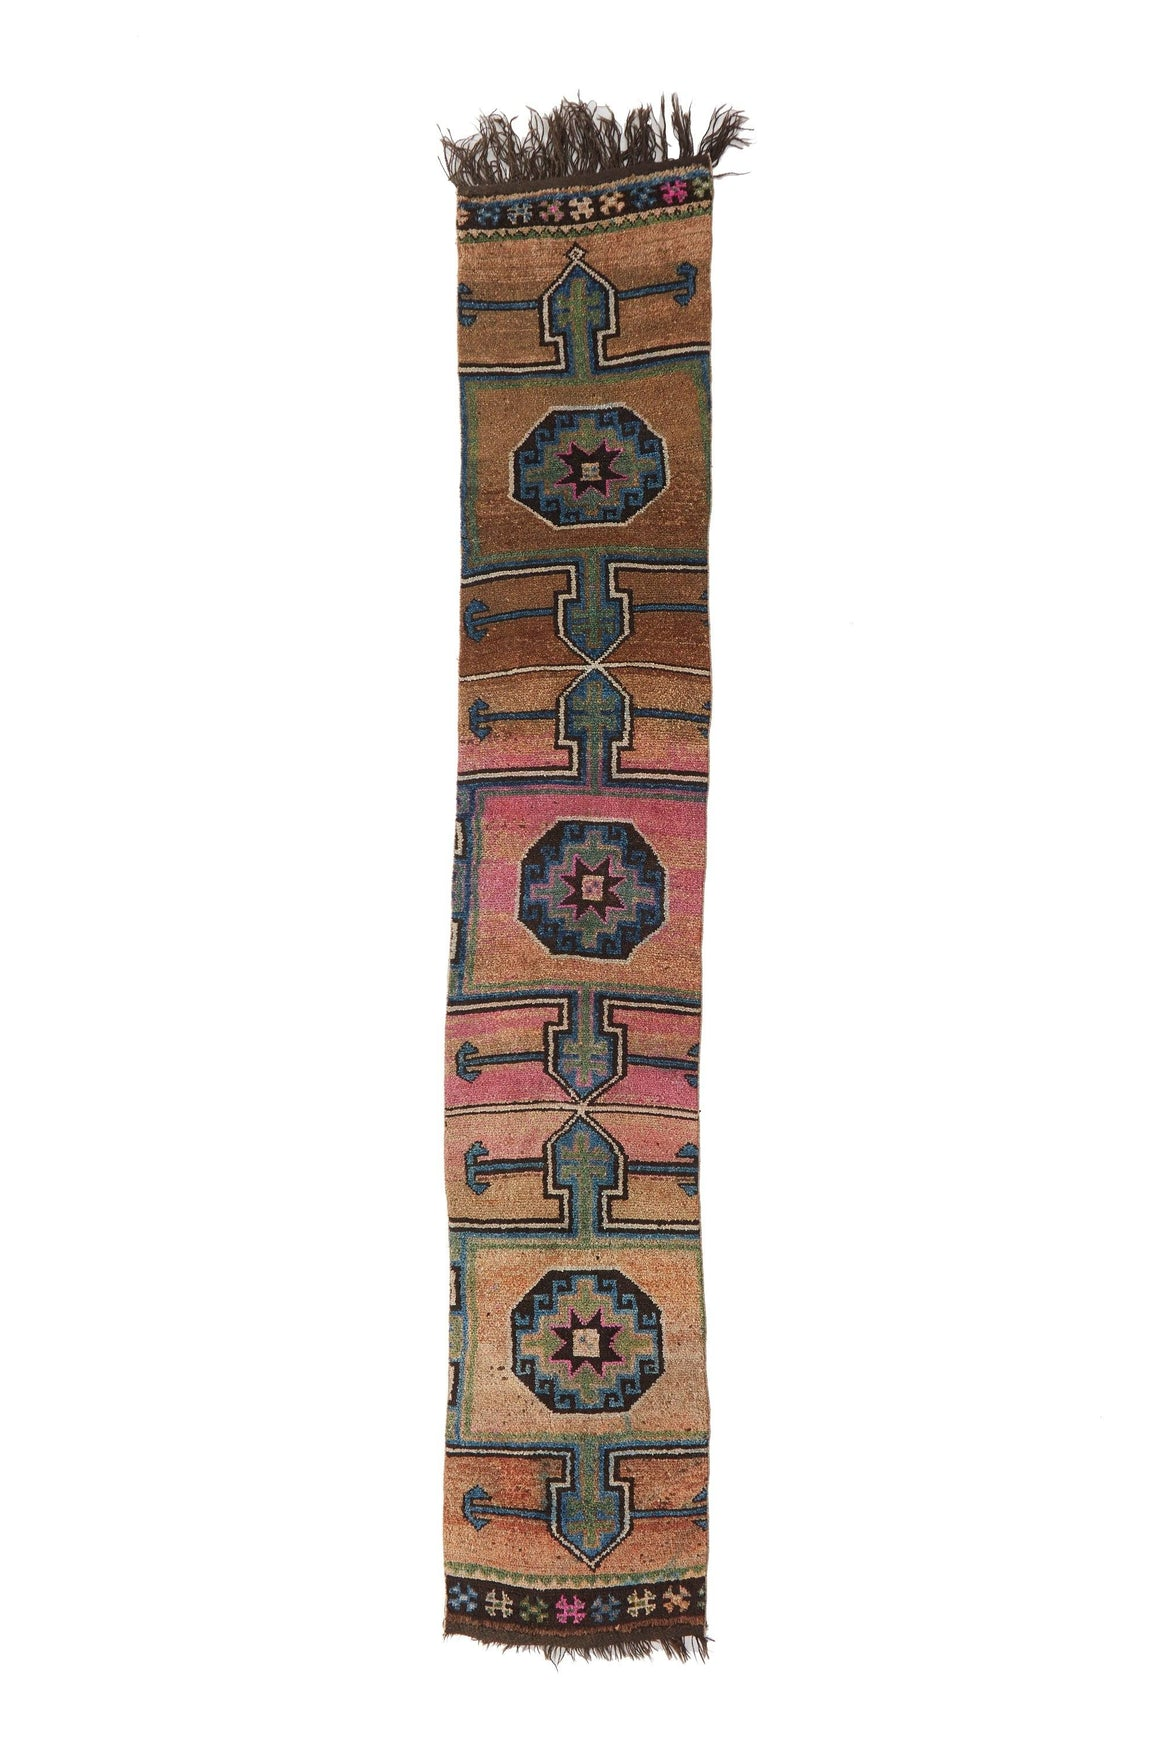 'Stardust' Vintage Turkish Narrow Runner - 2'2'' x 12'10'' - Canary Lane - Curated Textiles